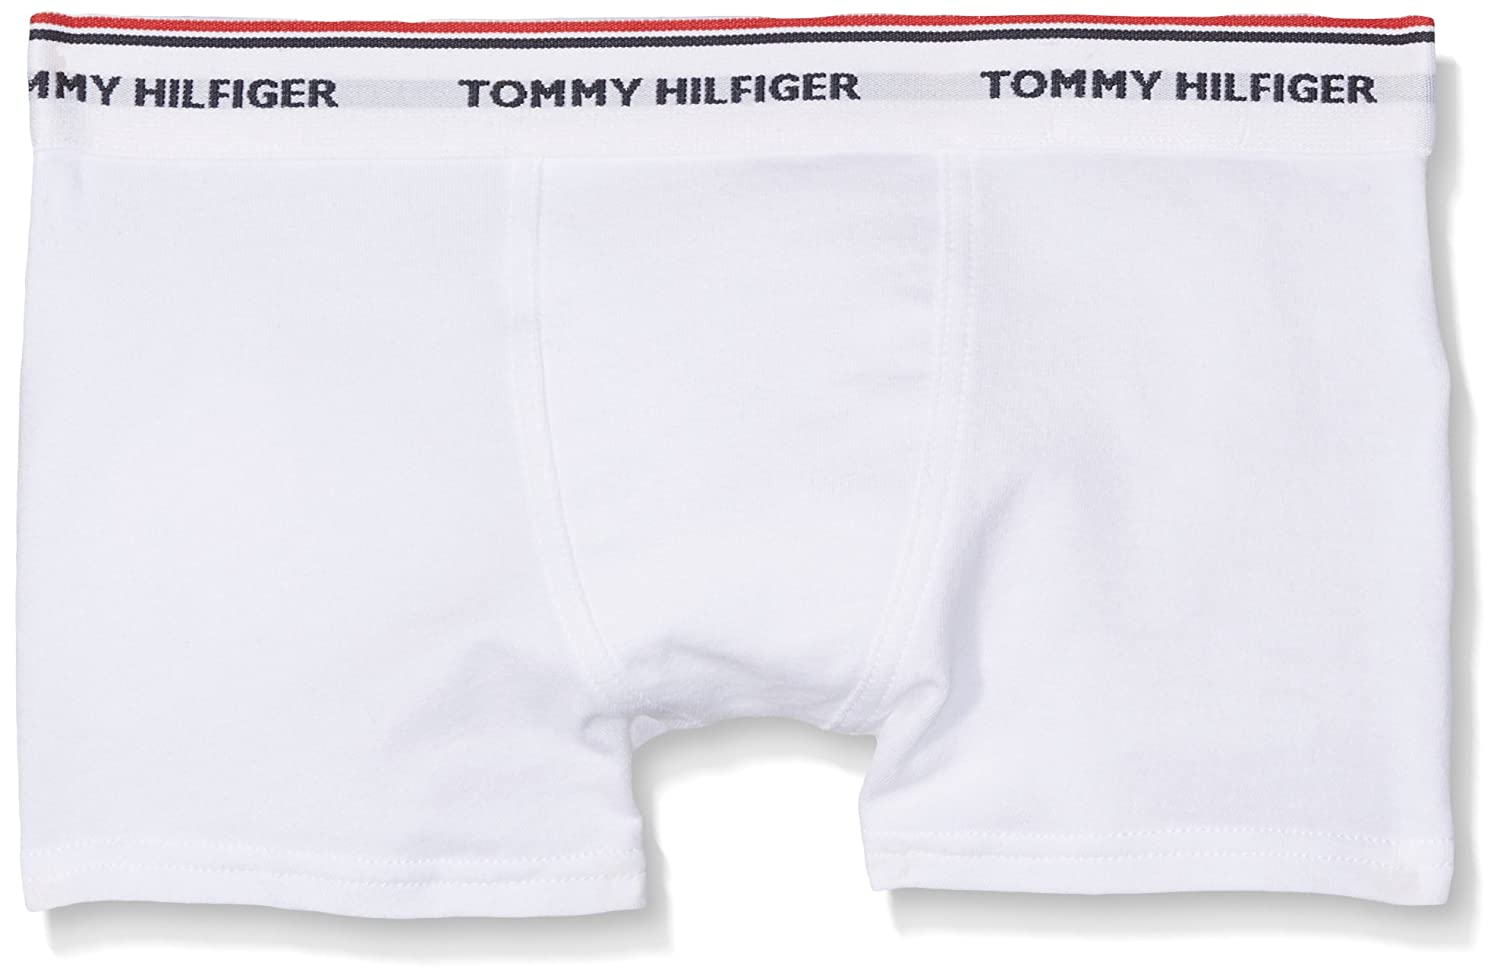 TOMMY HILFIGER Boys Sports Underwear Pack of 2